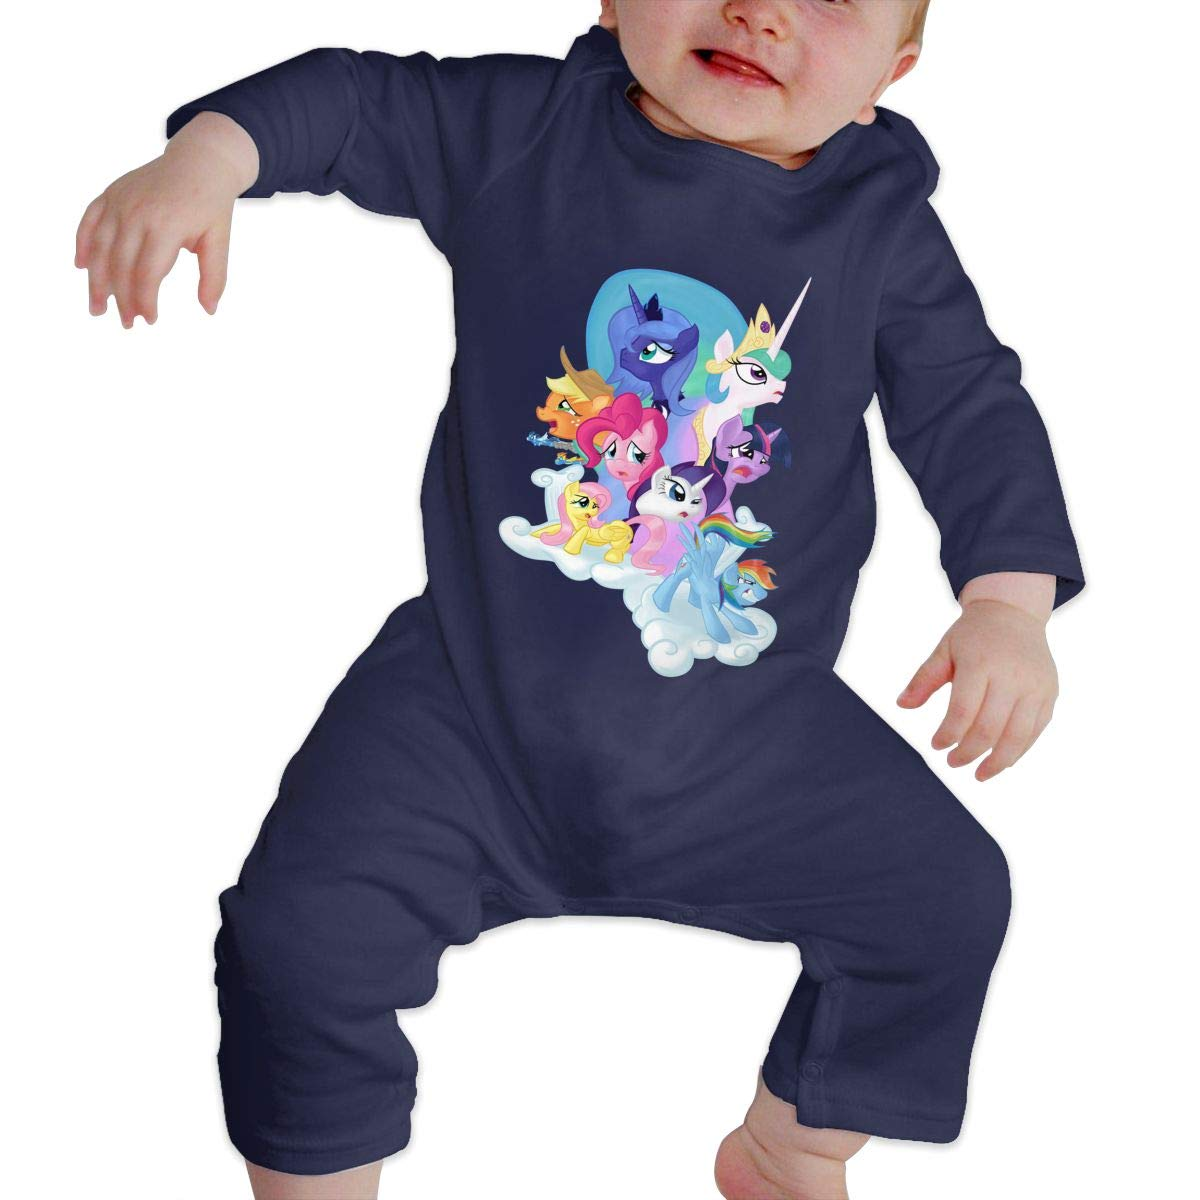 Unisex Baby O-Neck Long-Sleeve Solid Color Onesie Crawling Suit